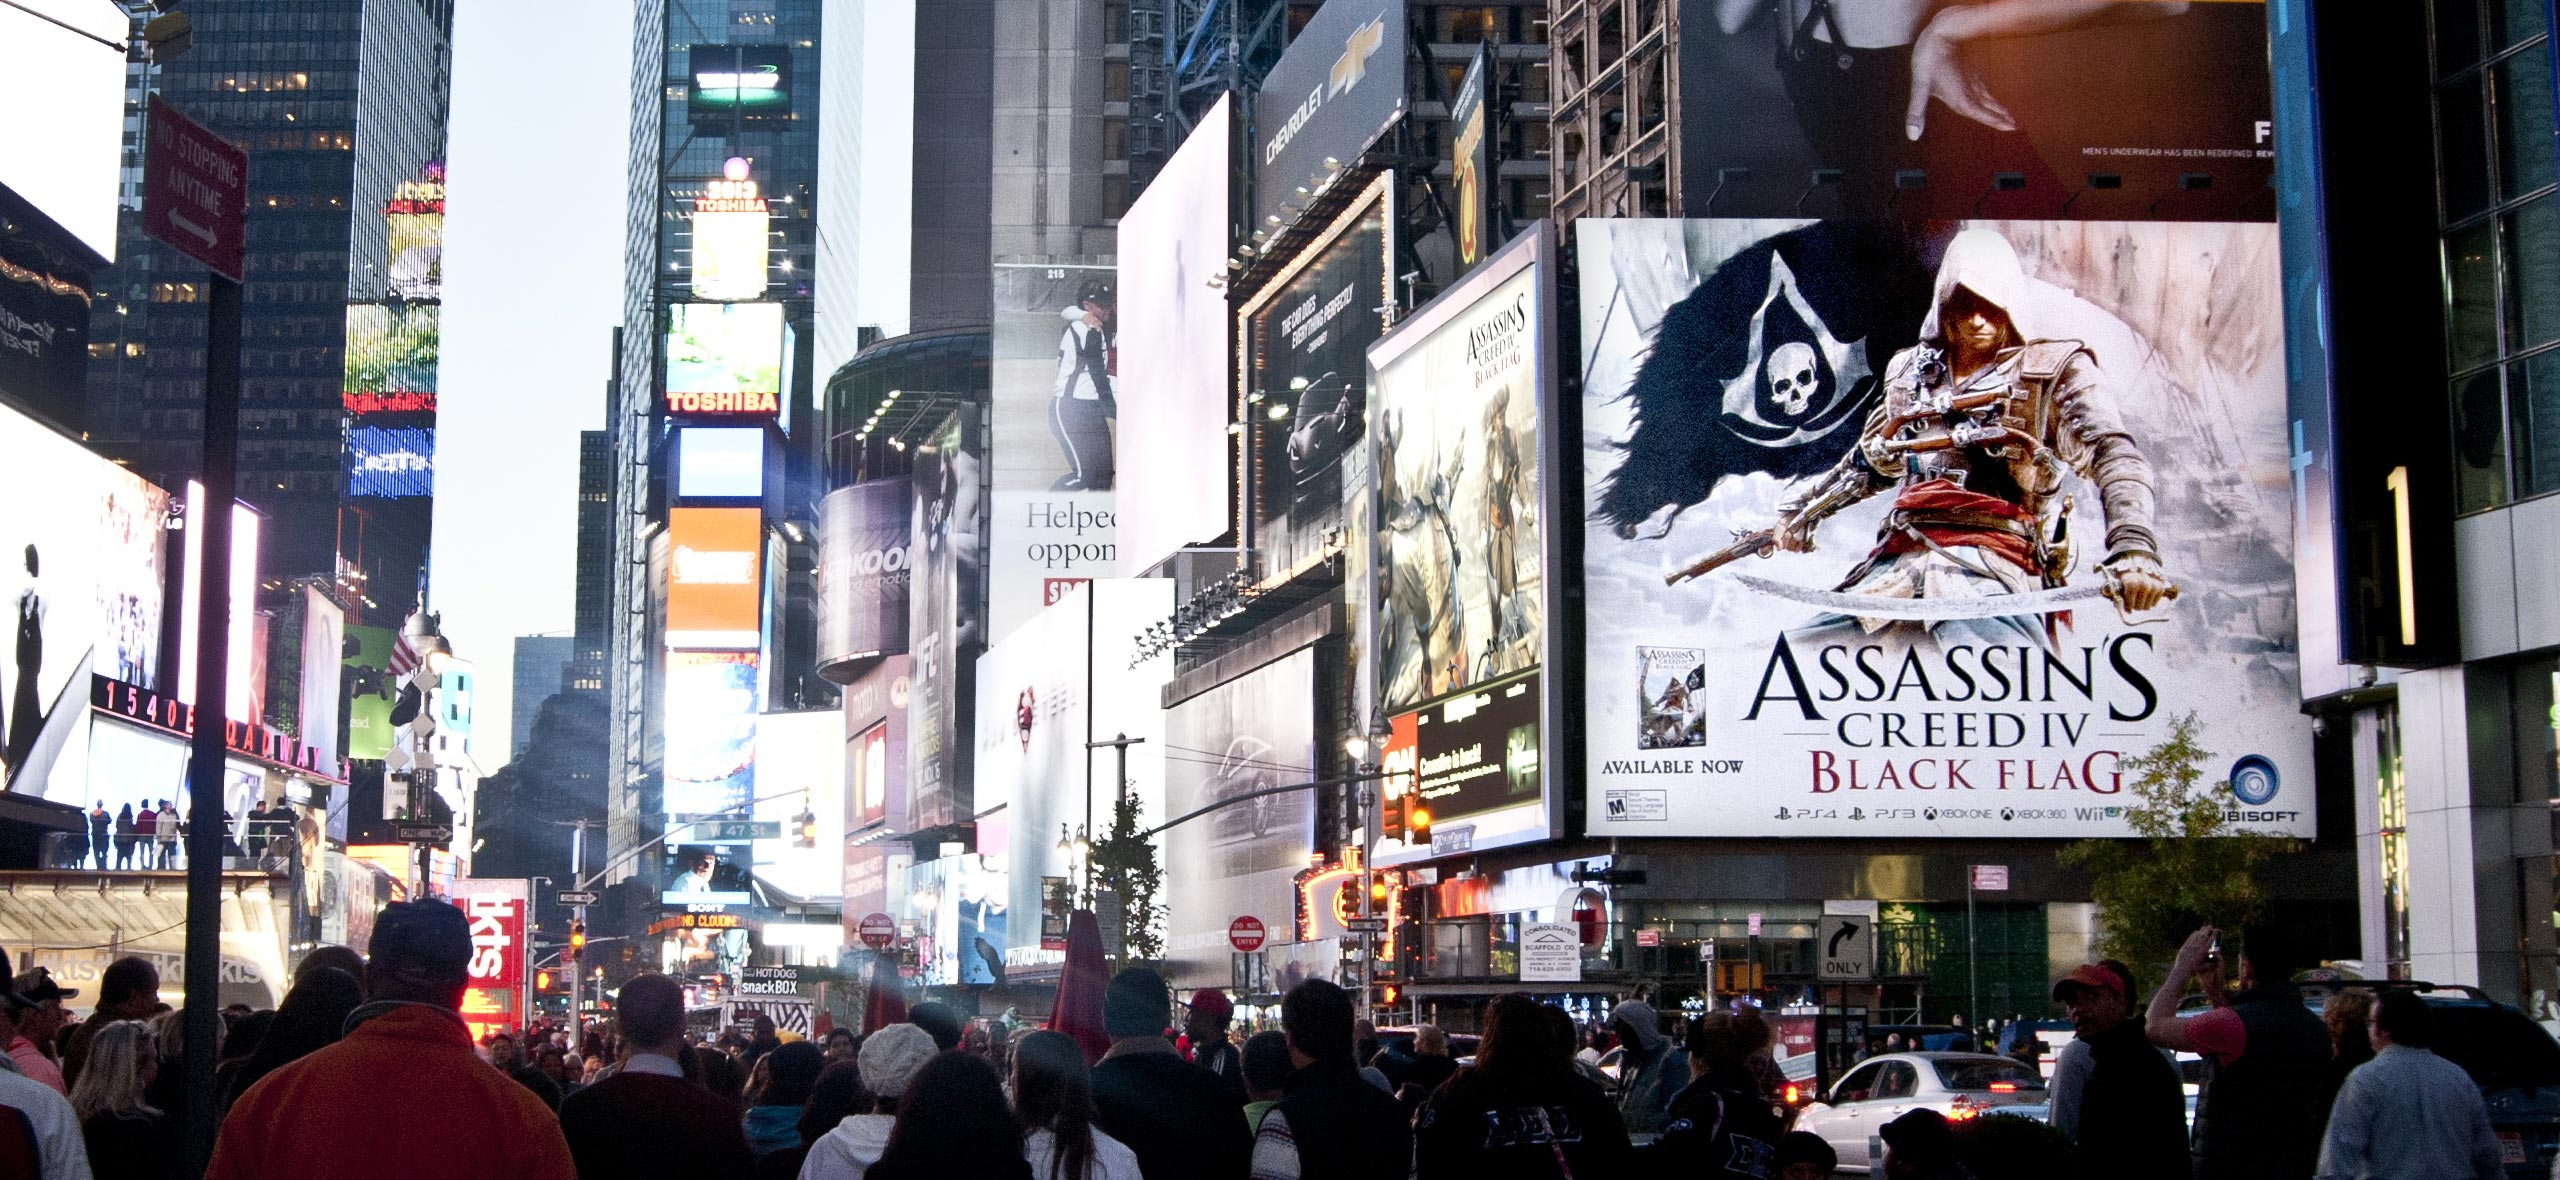 AT_ASSASINS_CREED_Black_Flag_photo_img_02